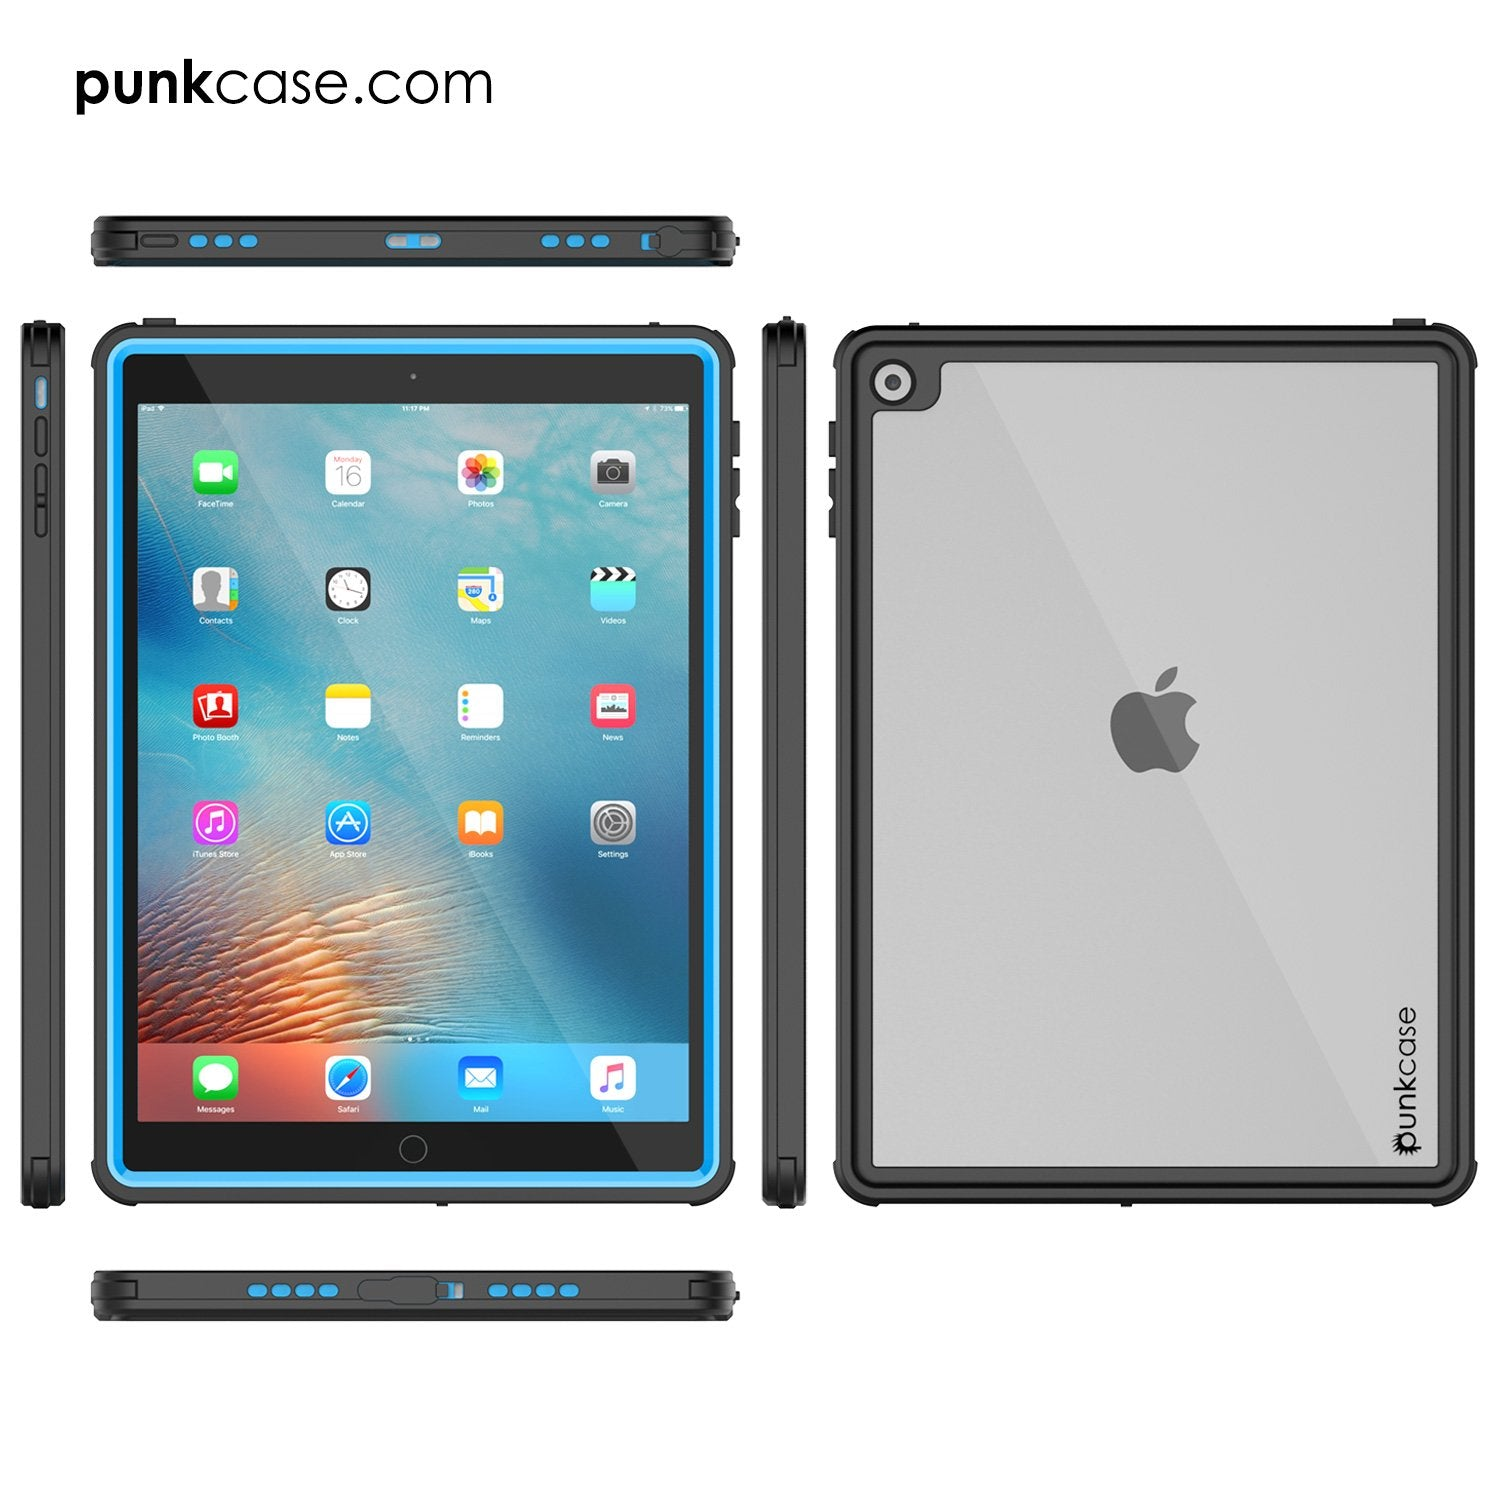 Punkcase iPad Pro 9.7 Case CRYSTAL Series Cover [Light Blue]